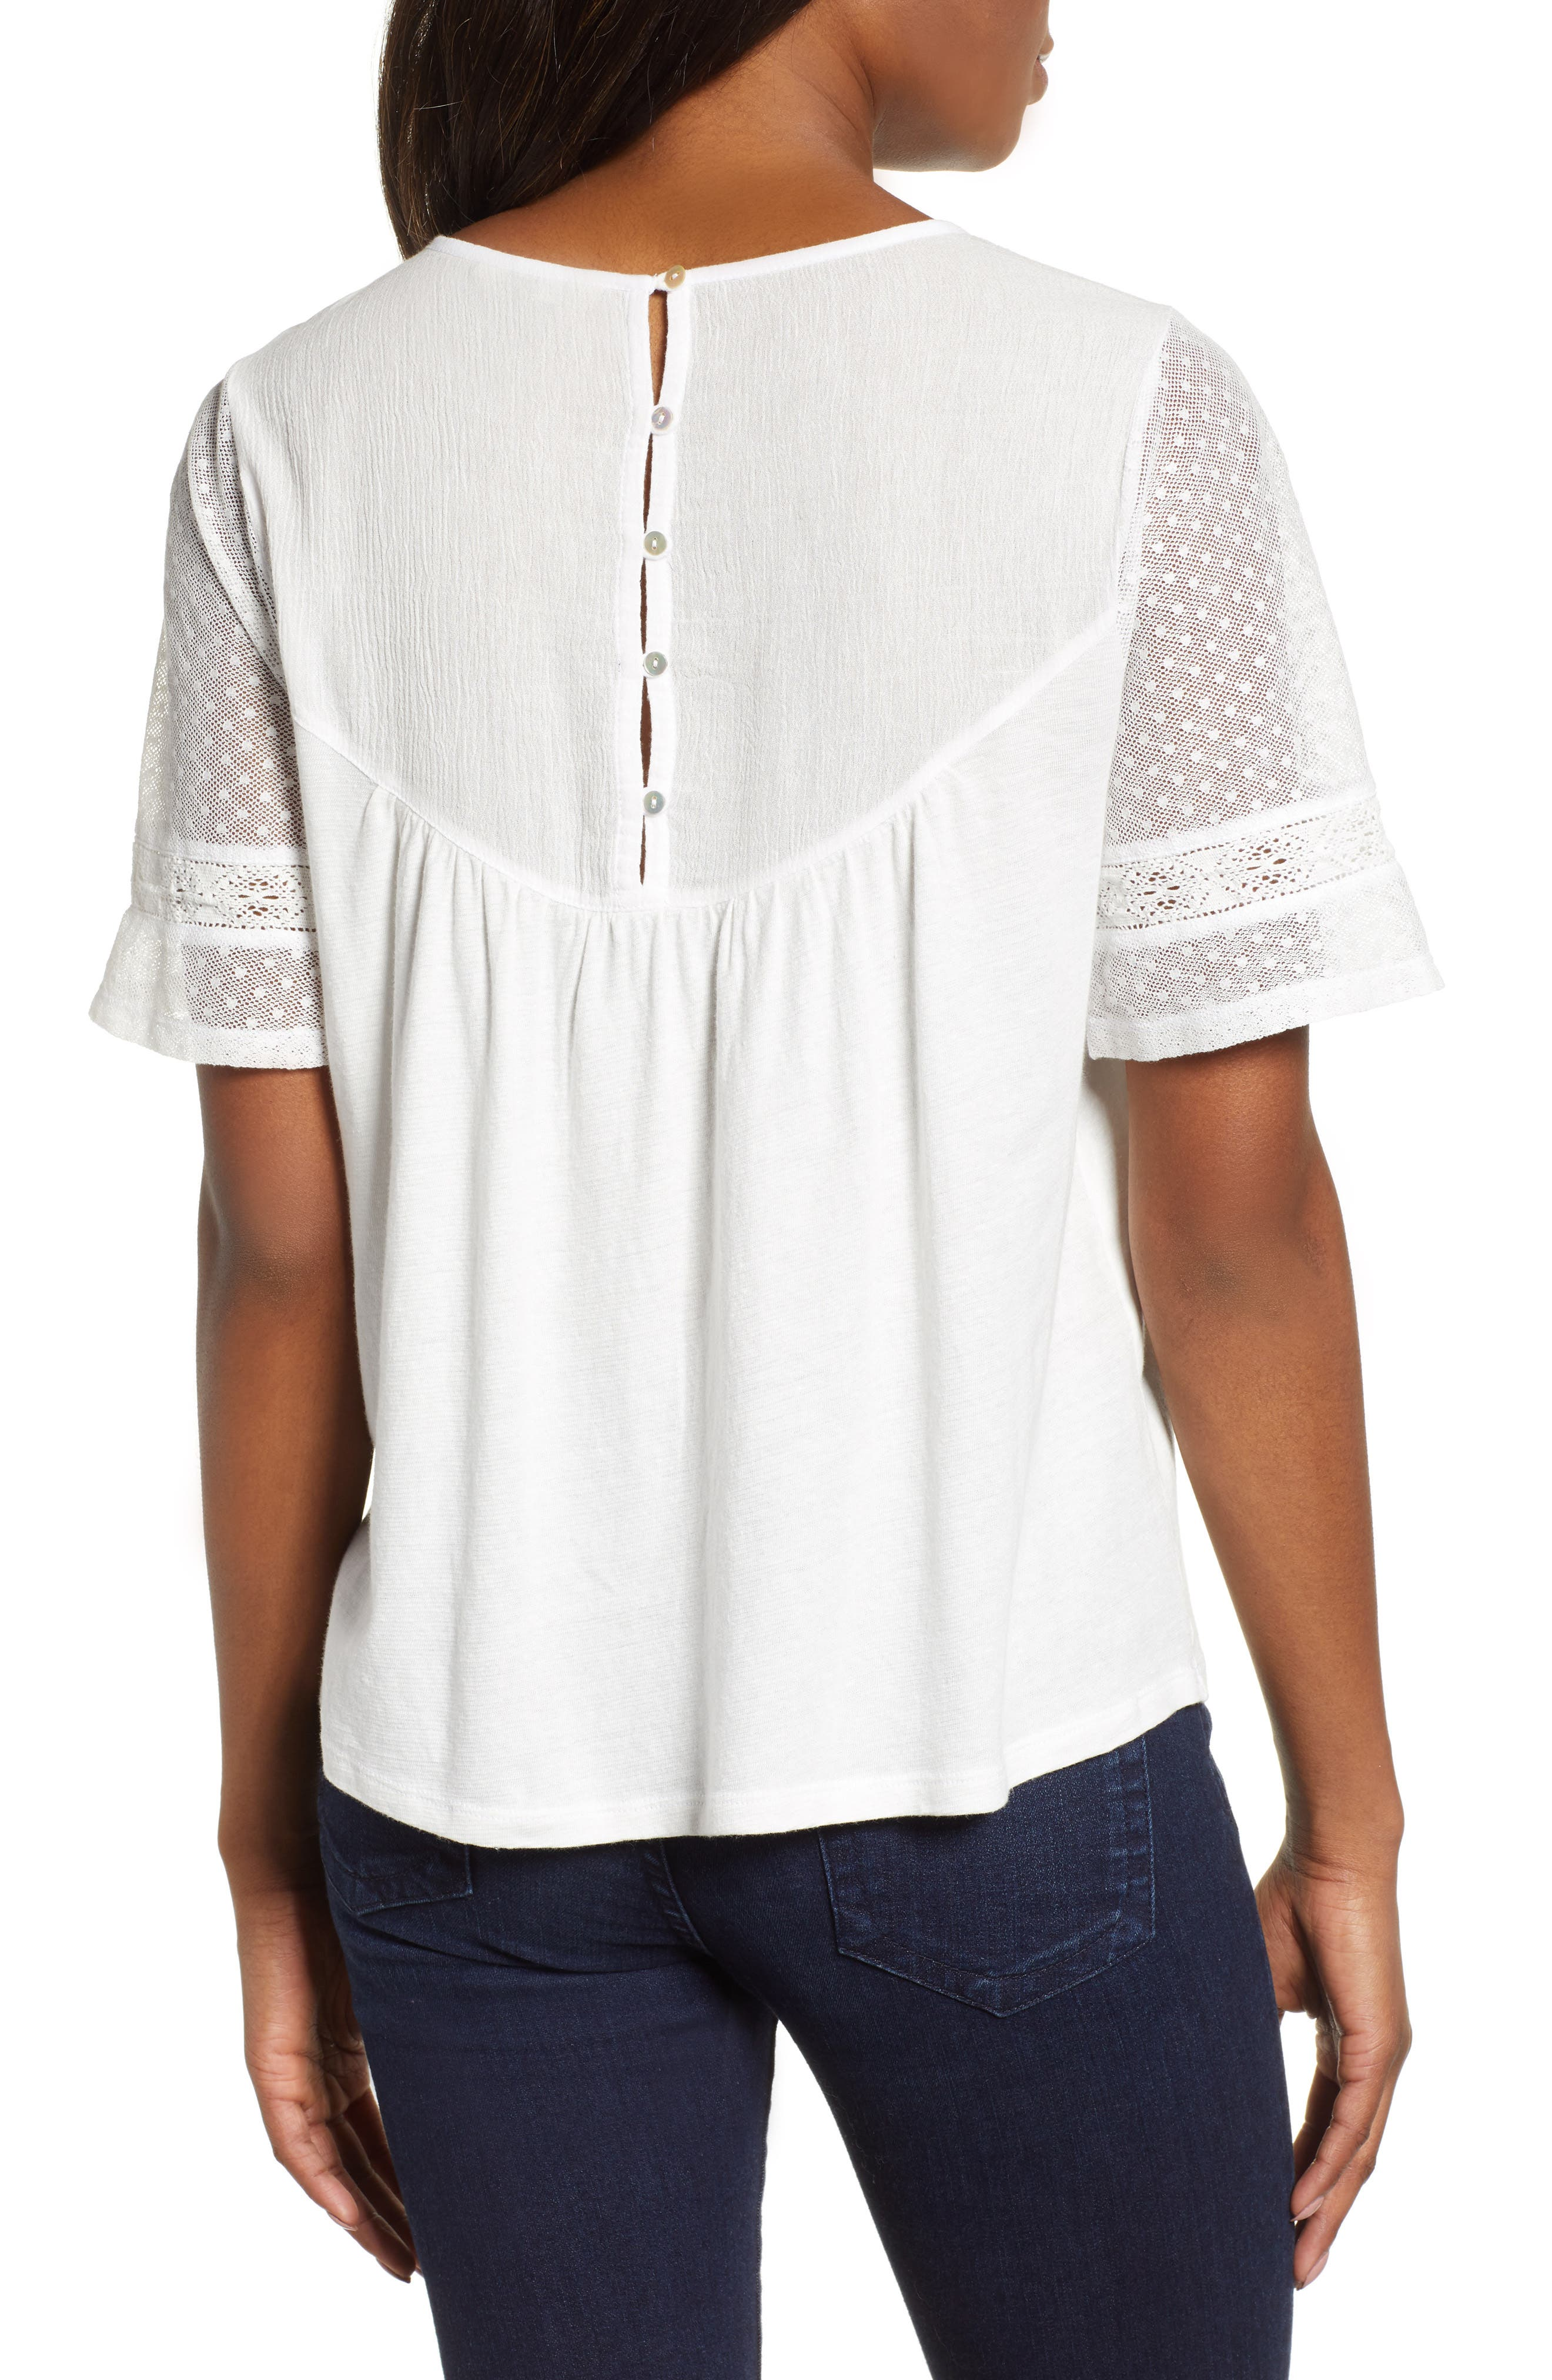 LUCKY BRAND,                             Embroidered Yoke Peasant Top,                             Alternate thumbnail 2, color,                             LUCKY WHITE